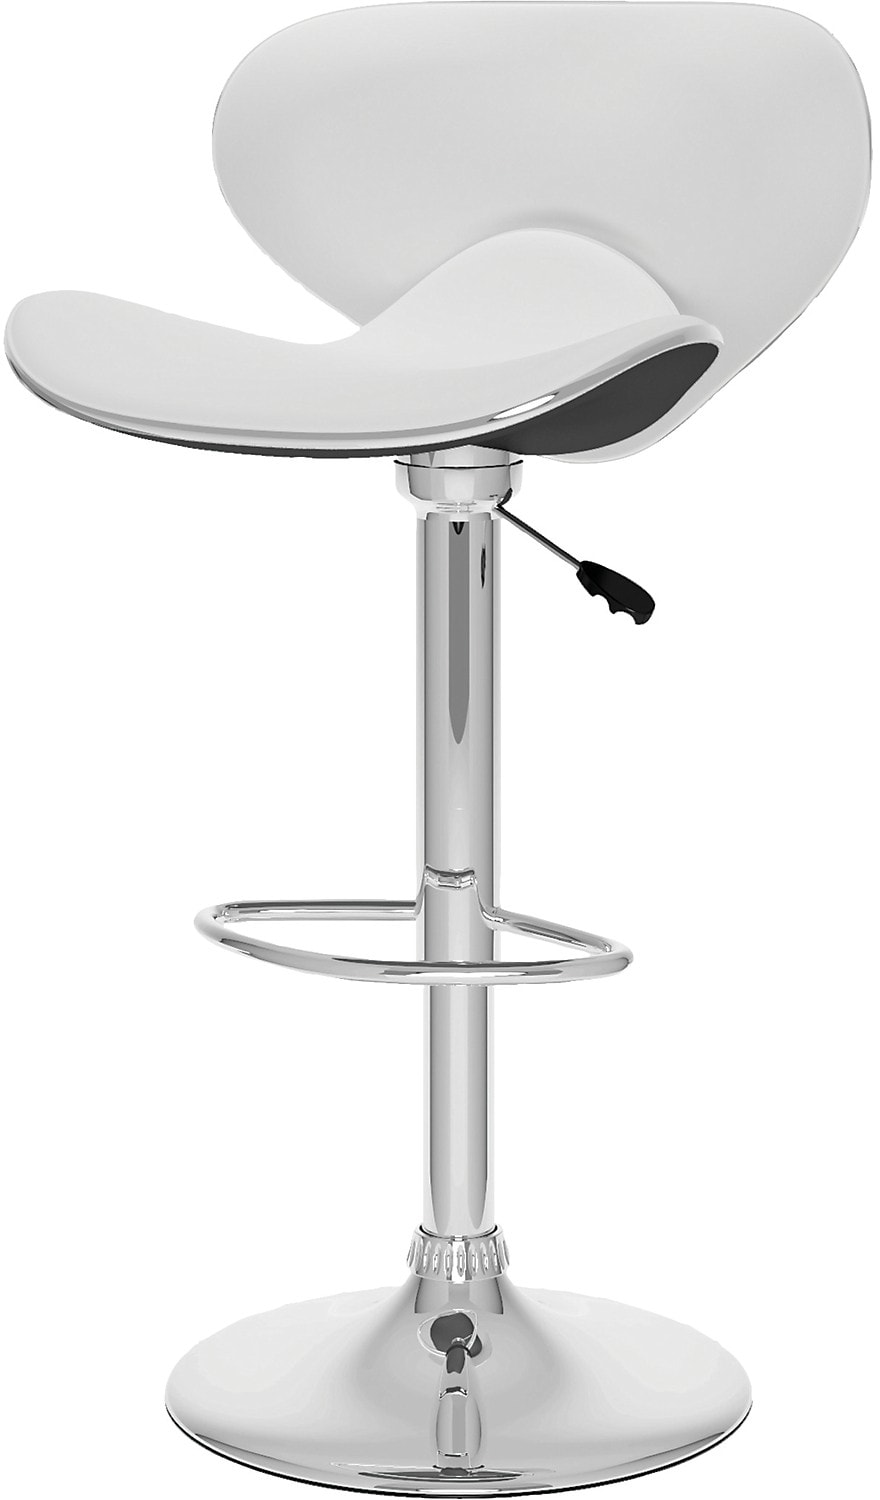 Dining Room Furniture - CorLiving Curved Form-Fitting Adjustable Bar Stool - White